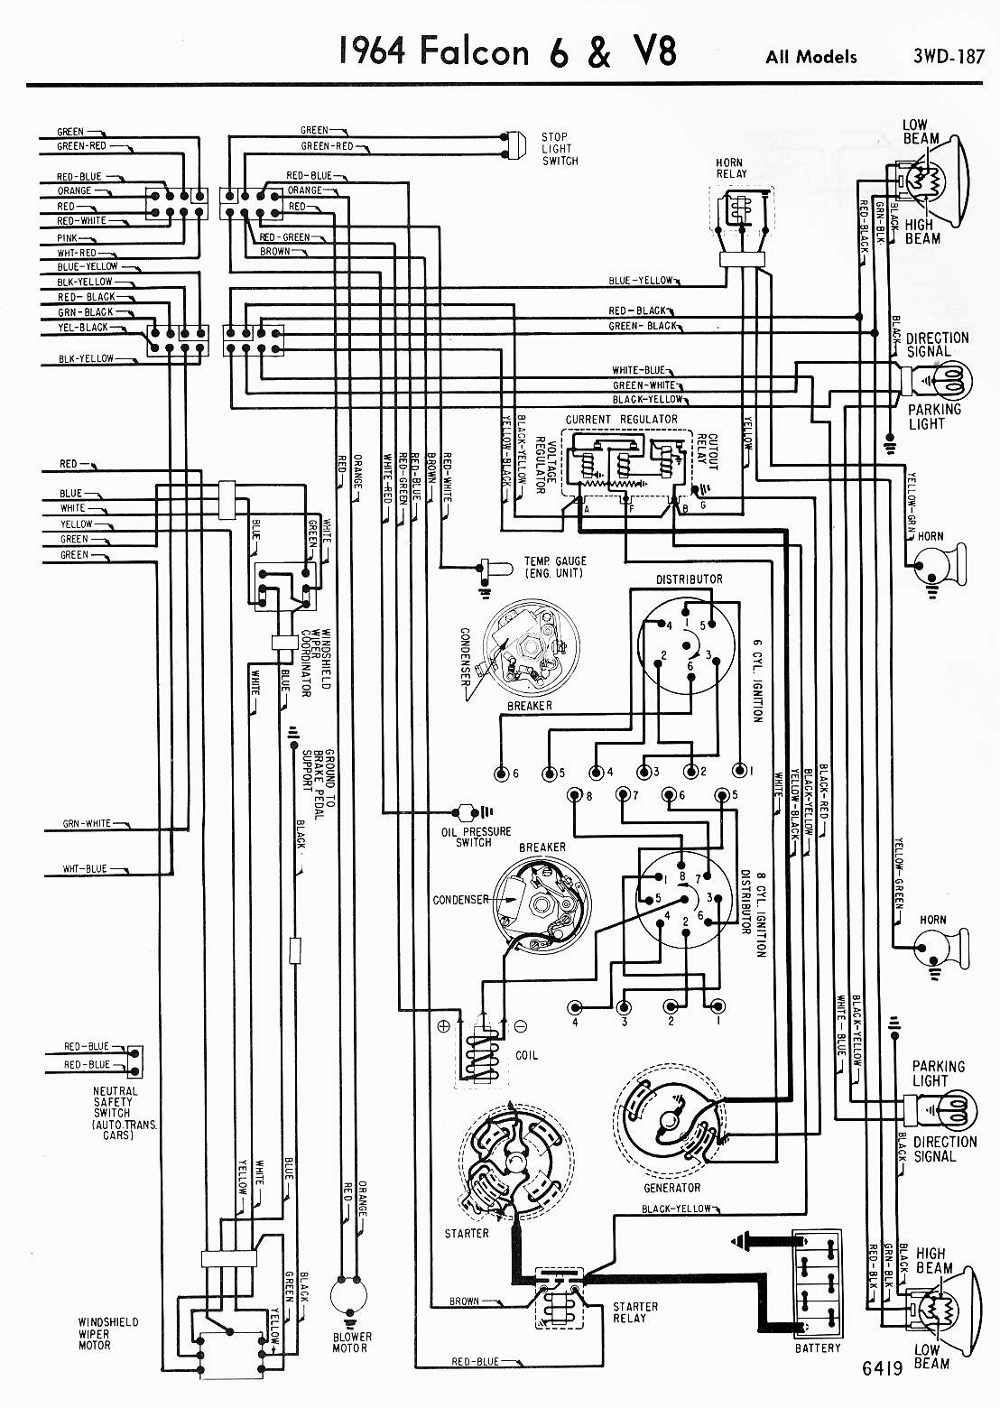 1964 ford falcon wiring diagram wiring diagrams of 1964 ford 6 and rh pinterest com 1964 ford falcon ranchero wiring diagram 1964 ford falcon ranchero wiring diagram